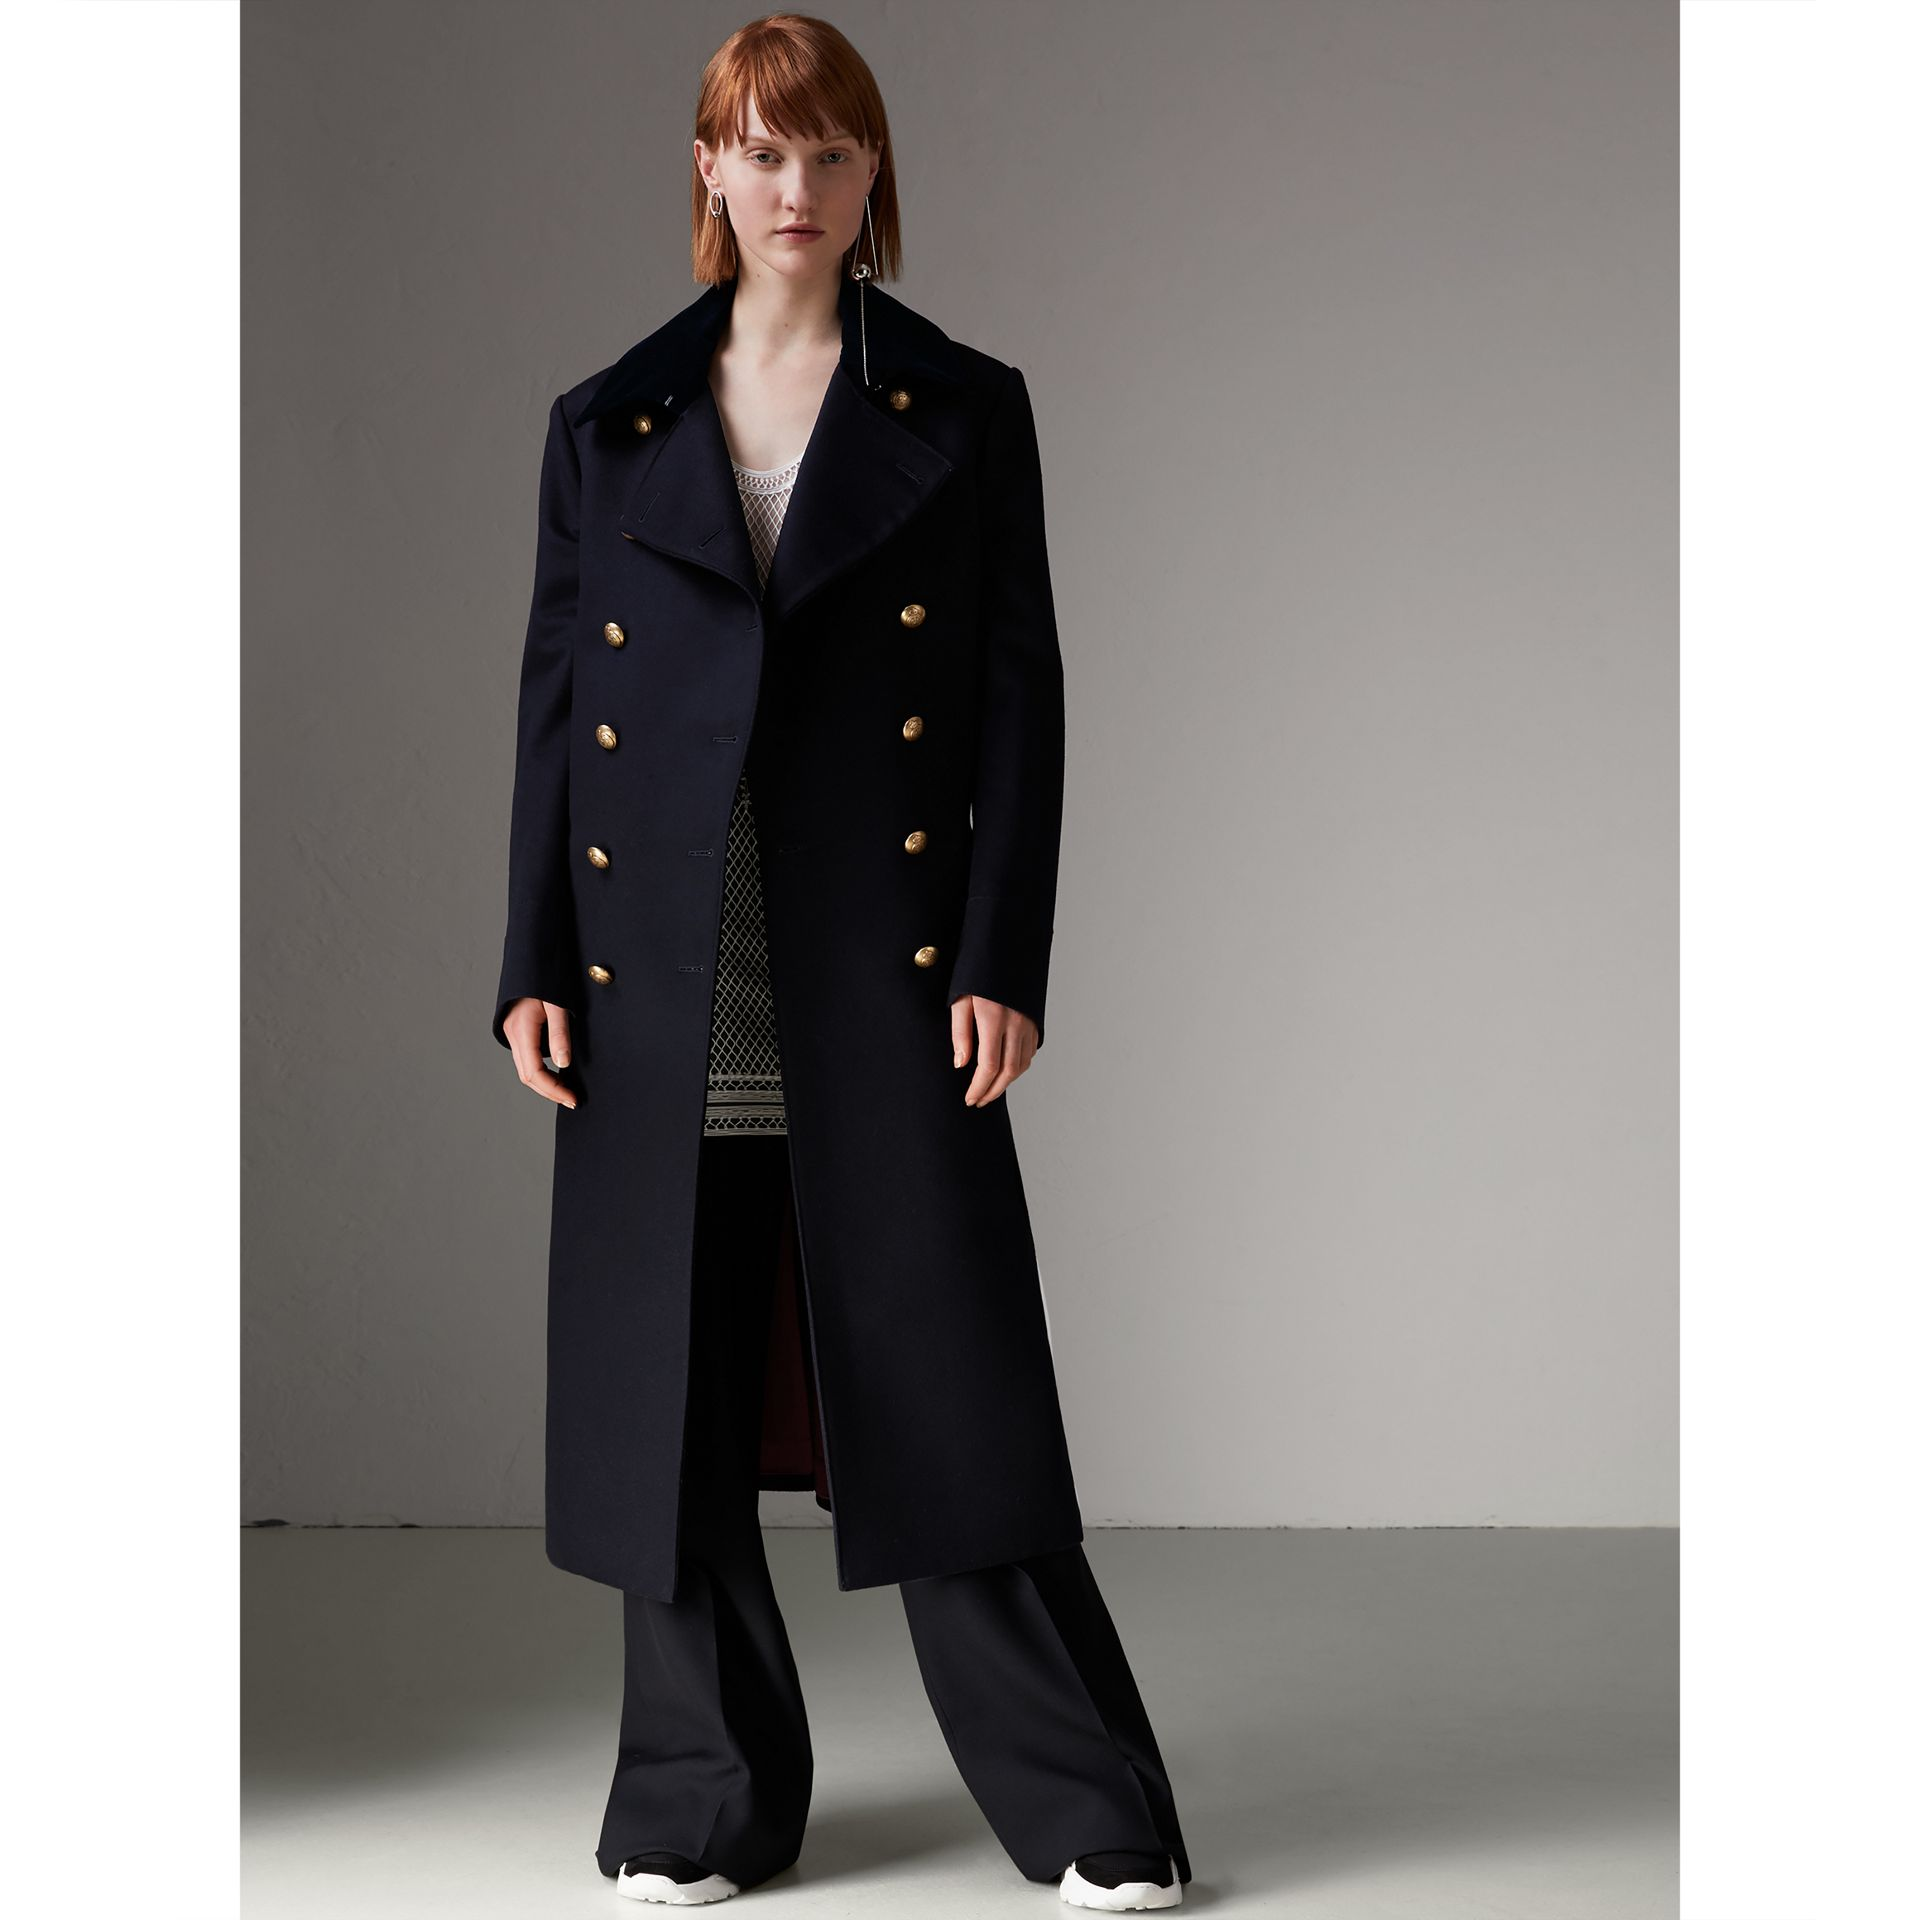 Military-Mantel aus Doeskin-Wolle (Dunkles Marineblau) - Damen | Burberry - Galerie-Bild 5